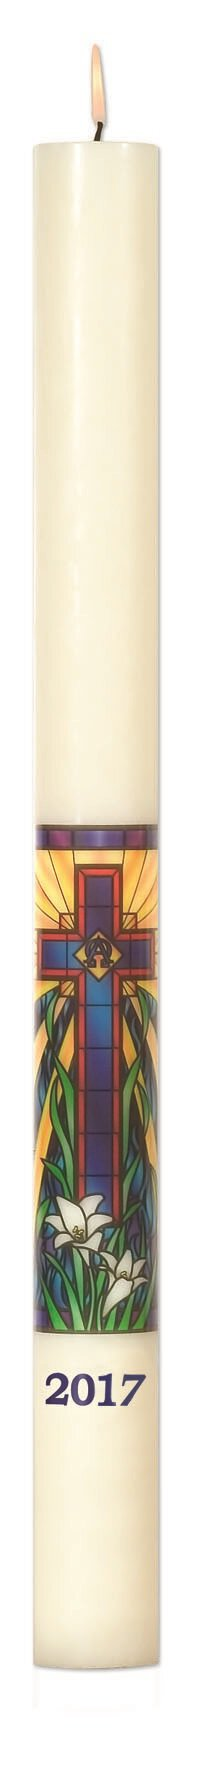 No 2 Radiant Light Mosaic Paschal Candle